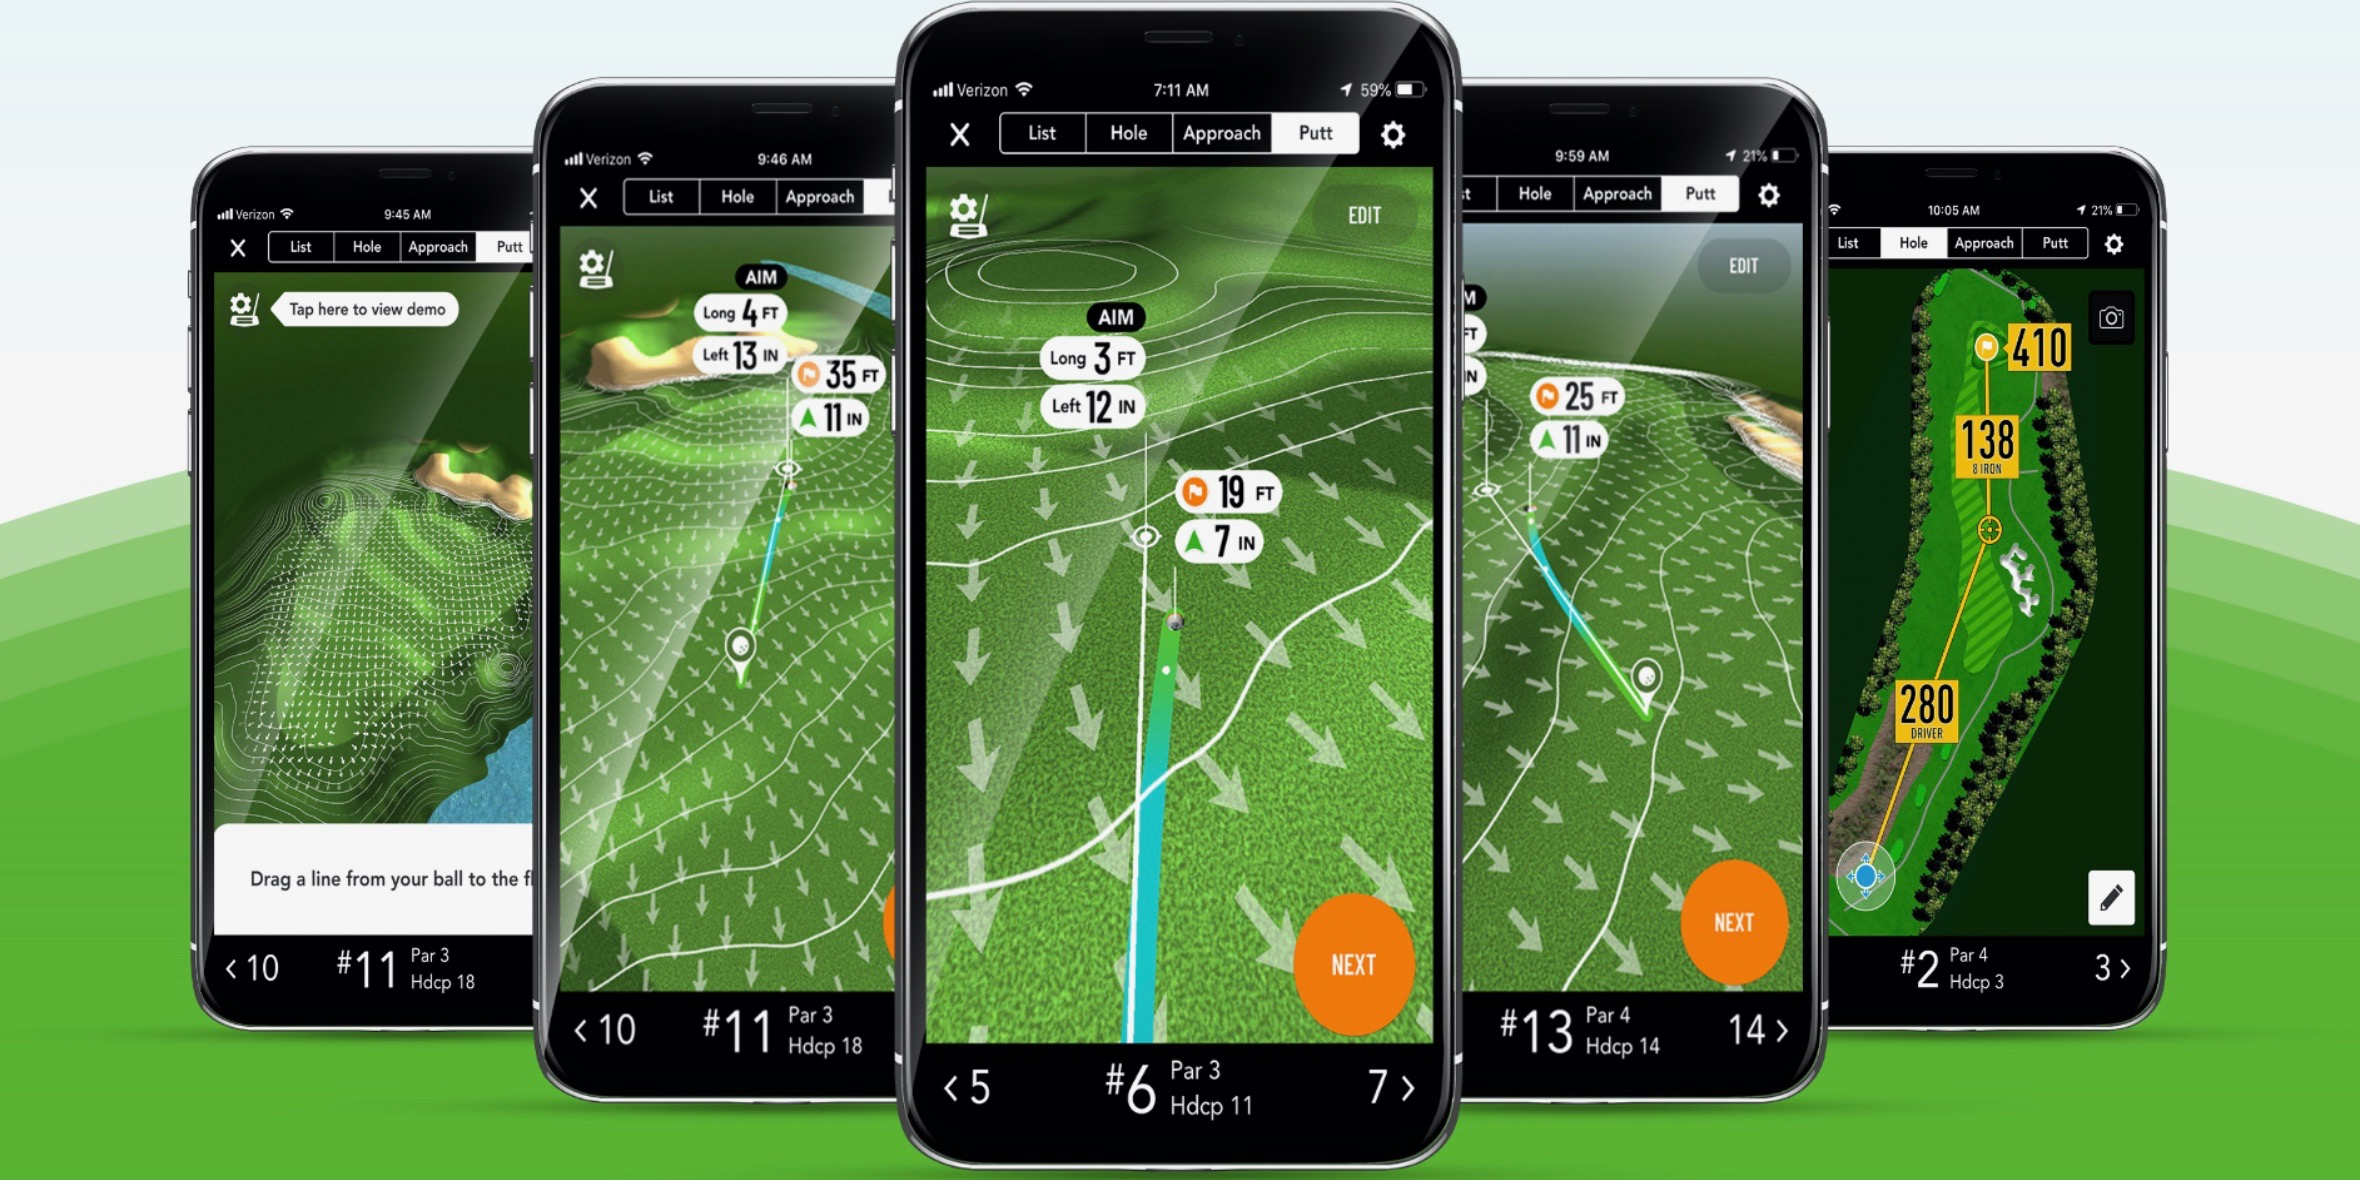 GolfLogix app for iPhone now offers animated putt line